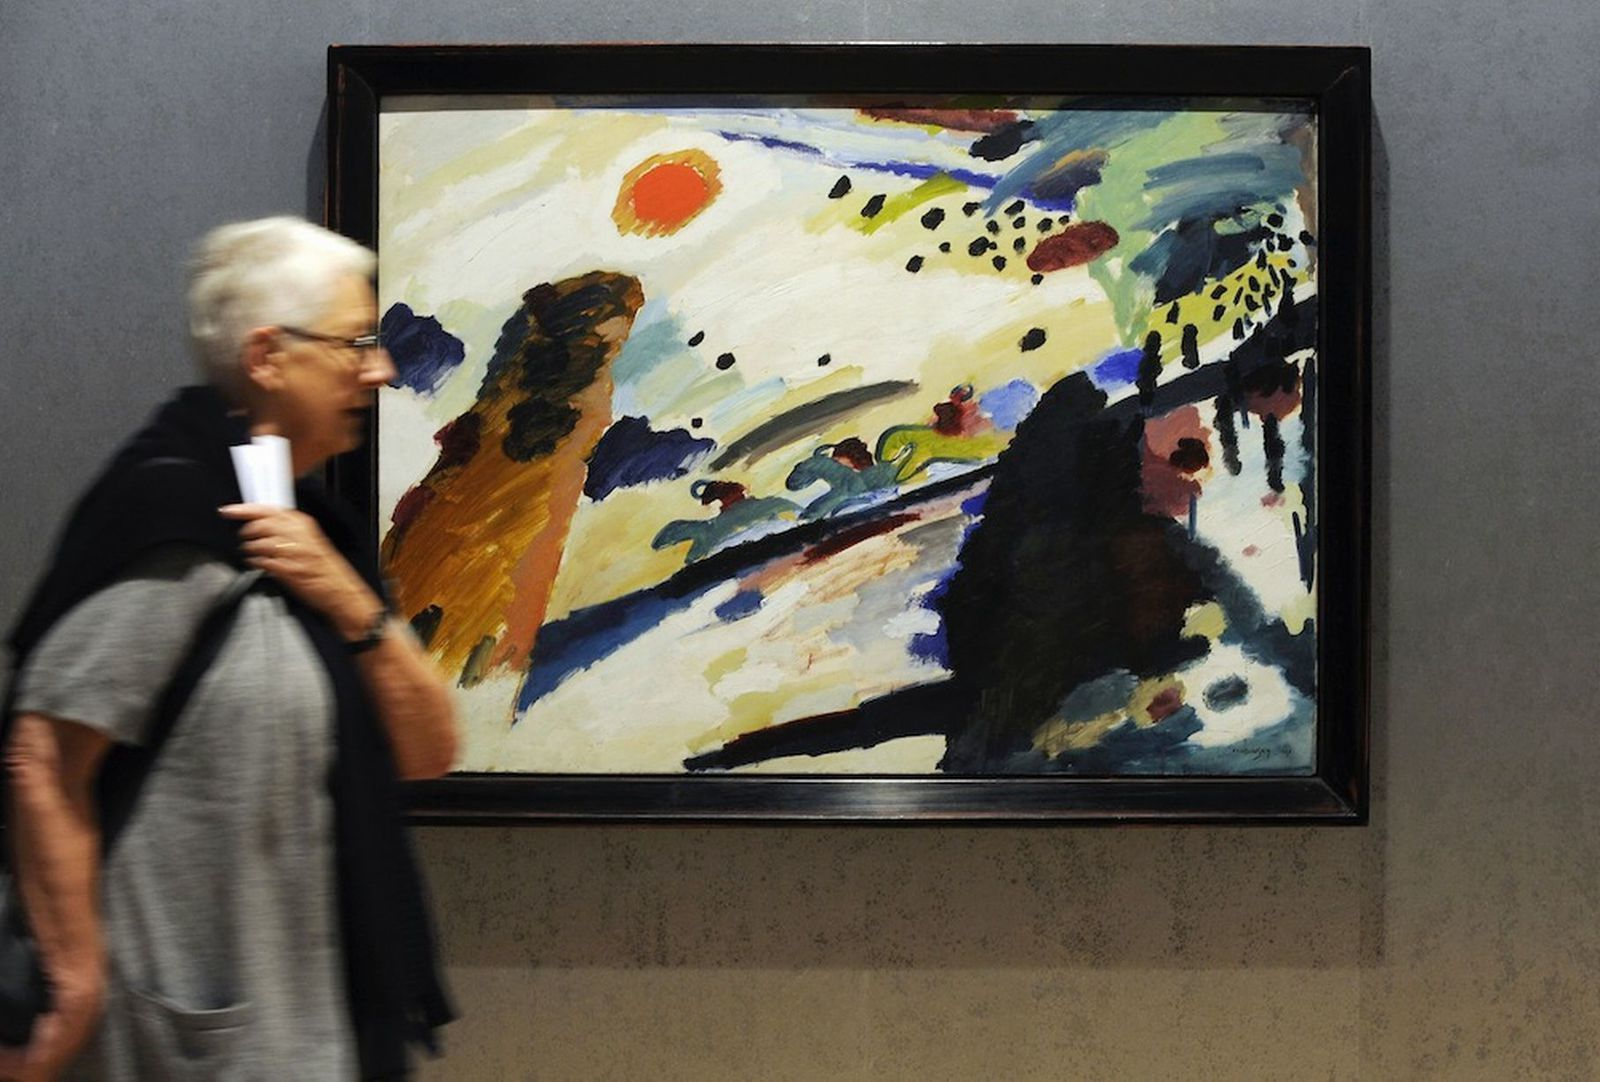 http://i4.mirror.co.uk/incoming/article4820299.ece/ALTERNATES/s1227b/Wassily-Kandinsky-painting.jpg